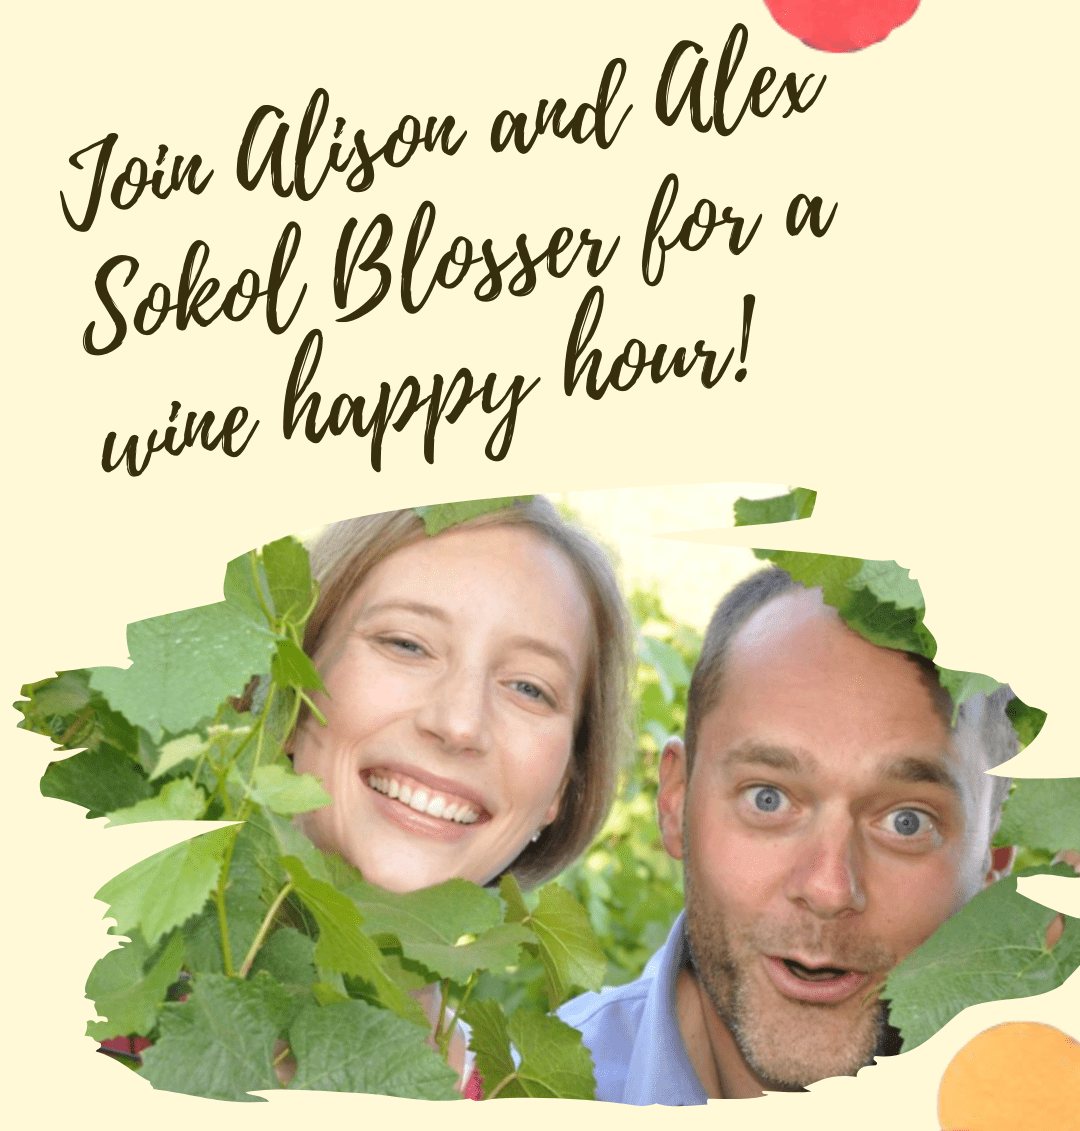 20200324 153538 0000 2 2 ZZ33GR.tmp  - Virtual Happy Hour with Alex and Alison Sokol Blosser